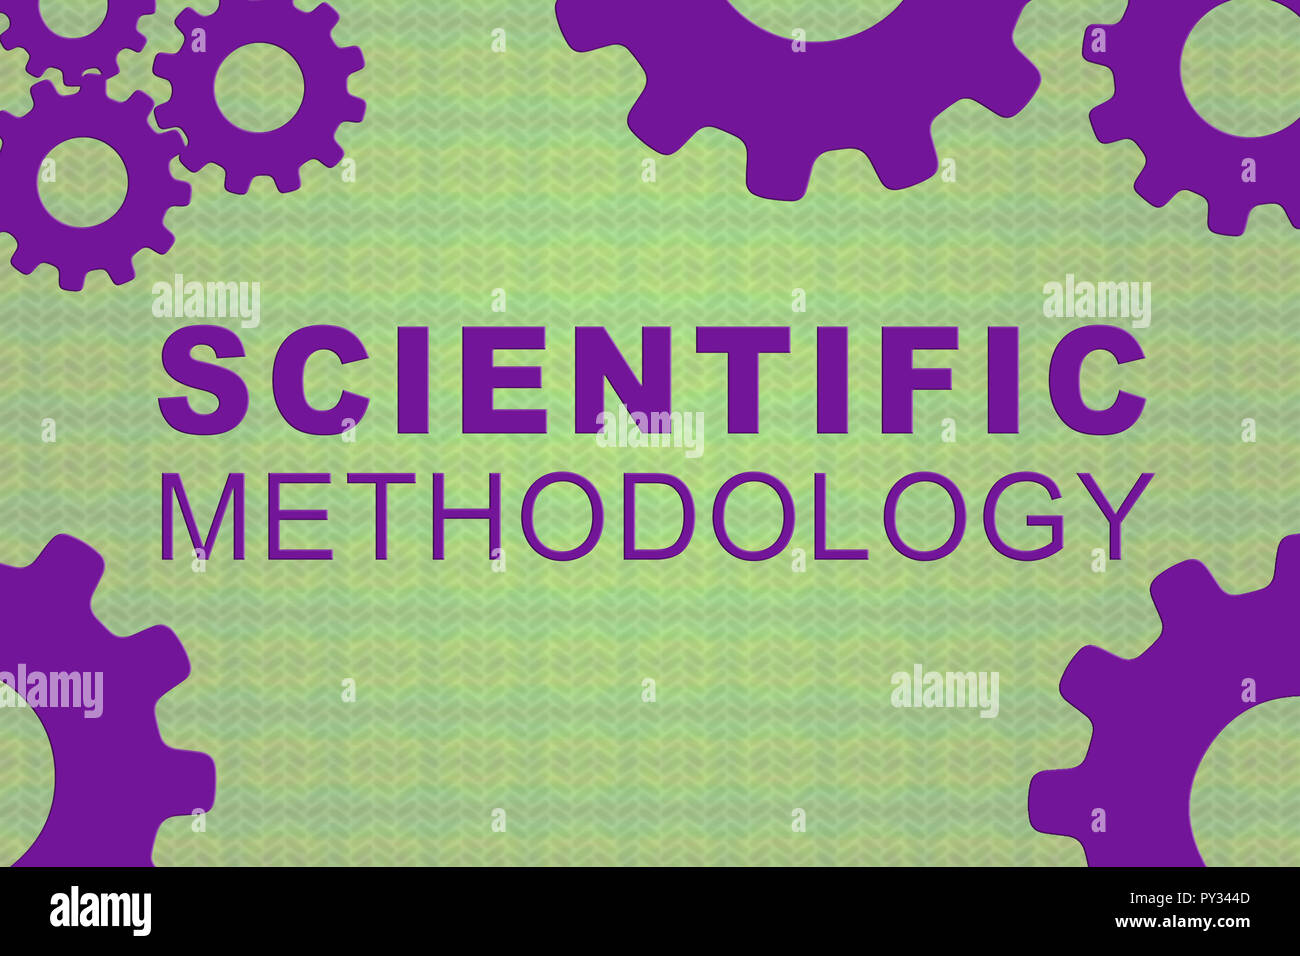 SCIENTIFIC METHODOLOGY sign concept illustration with purple gear wheel figures on colored background - Stock Image